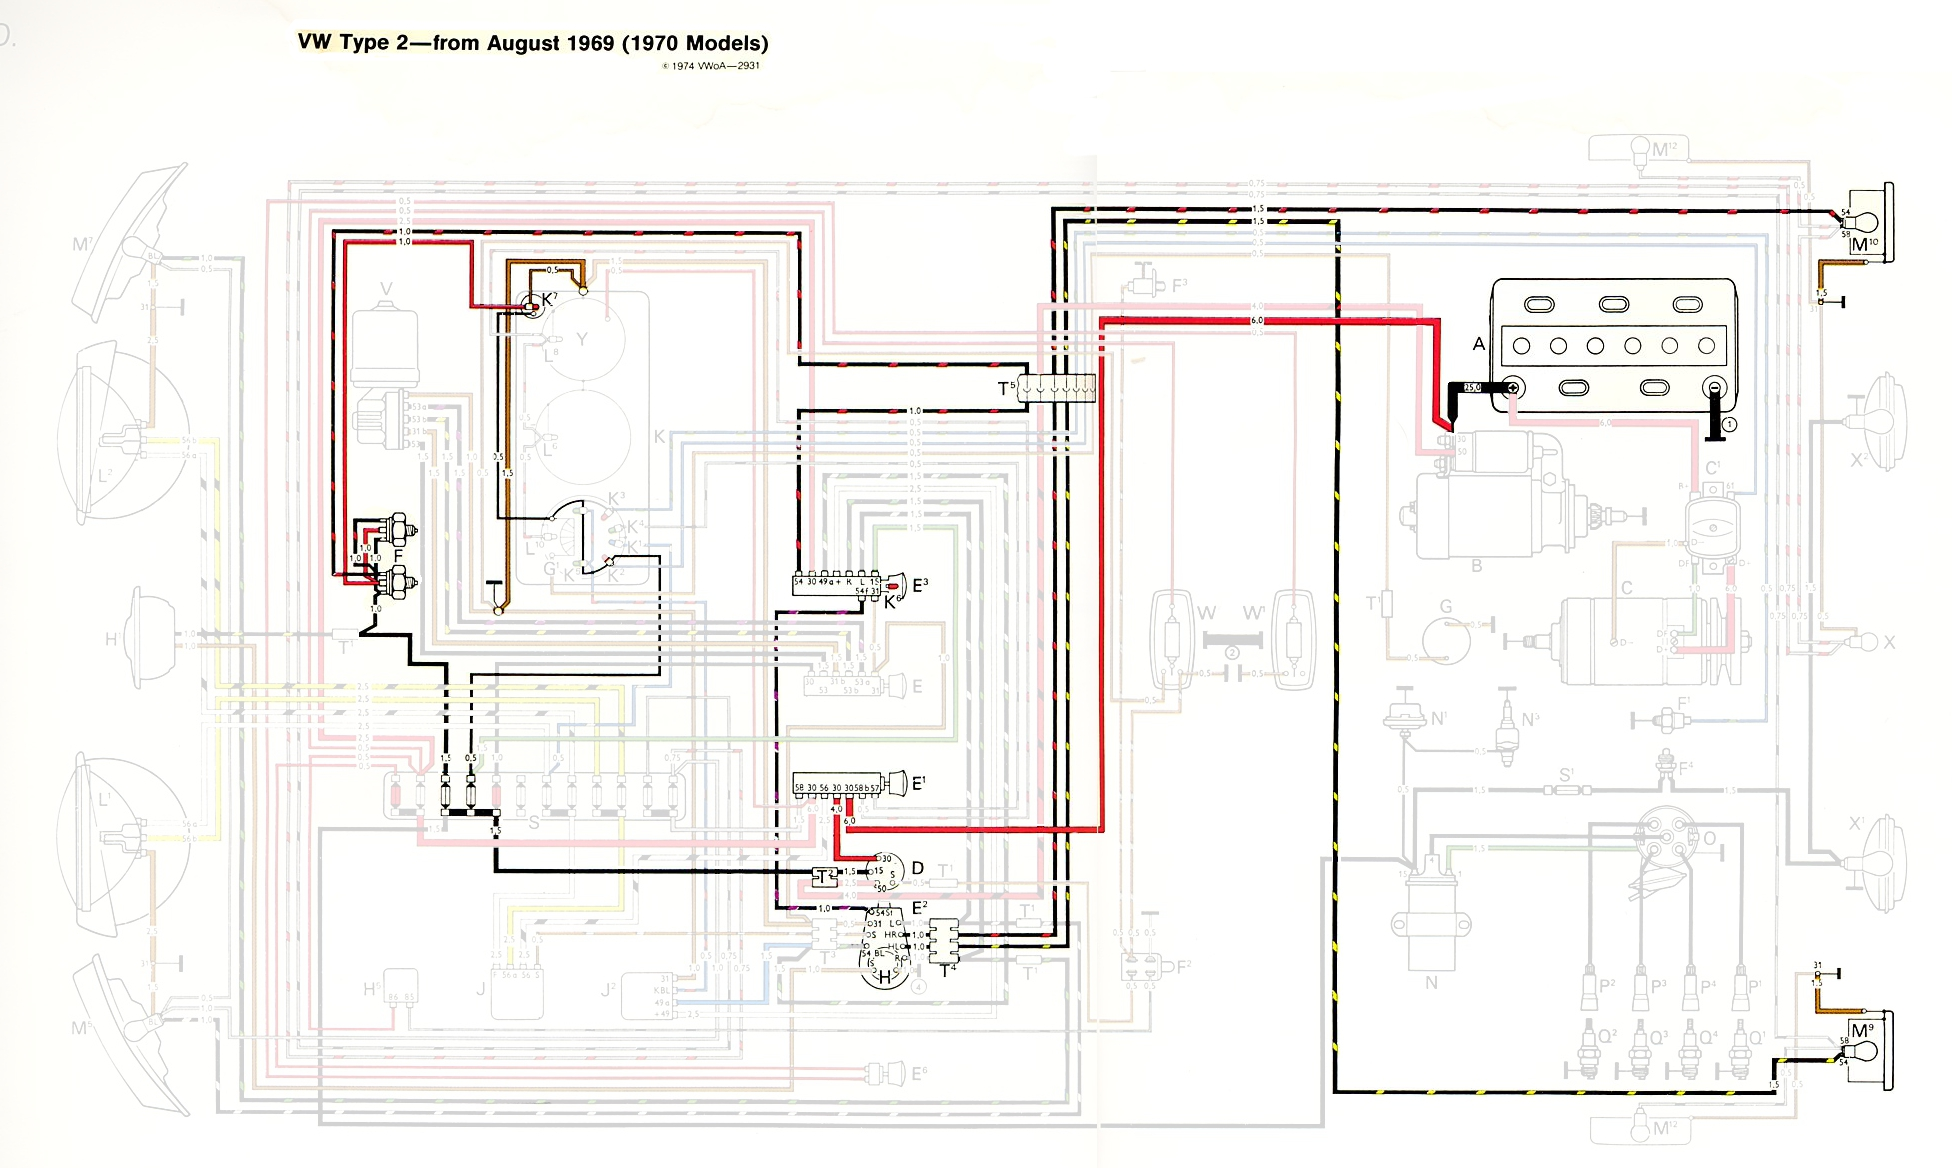 TheSamba.com :: Type 2 Wiring Diagrams on 1971 vw super beetle starter diagram, 70 vw beetle, 70 vw chassis, 70 vw engine, bay window diagram, 1968 vw beetle speedometer diagram, 1970 vw electrical diagram, 74 super beetle front end diagram, vw type 3 engine diagram, vw beetle fuse box diagram, 2nd gen eclipse alternator diagram,